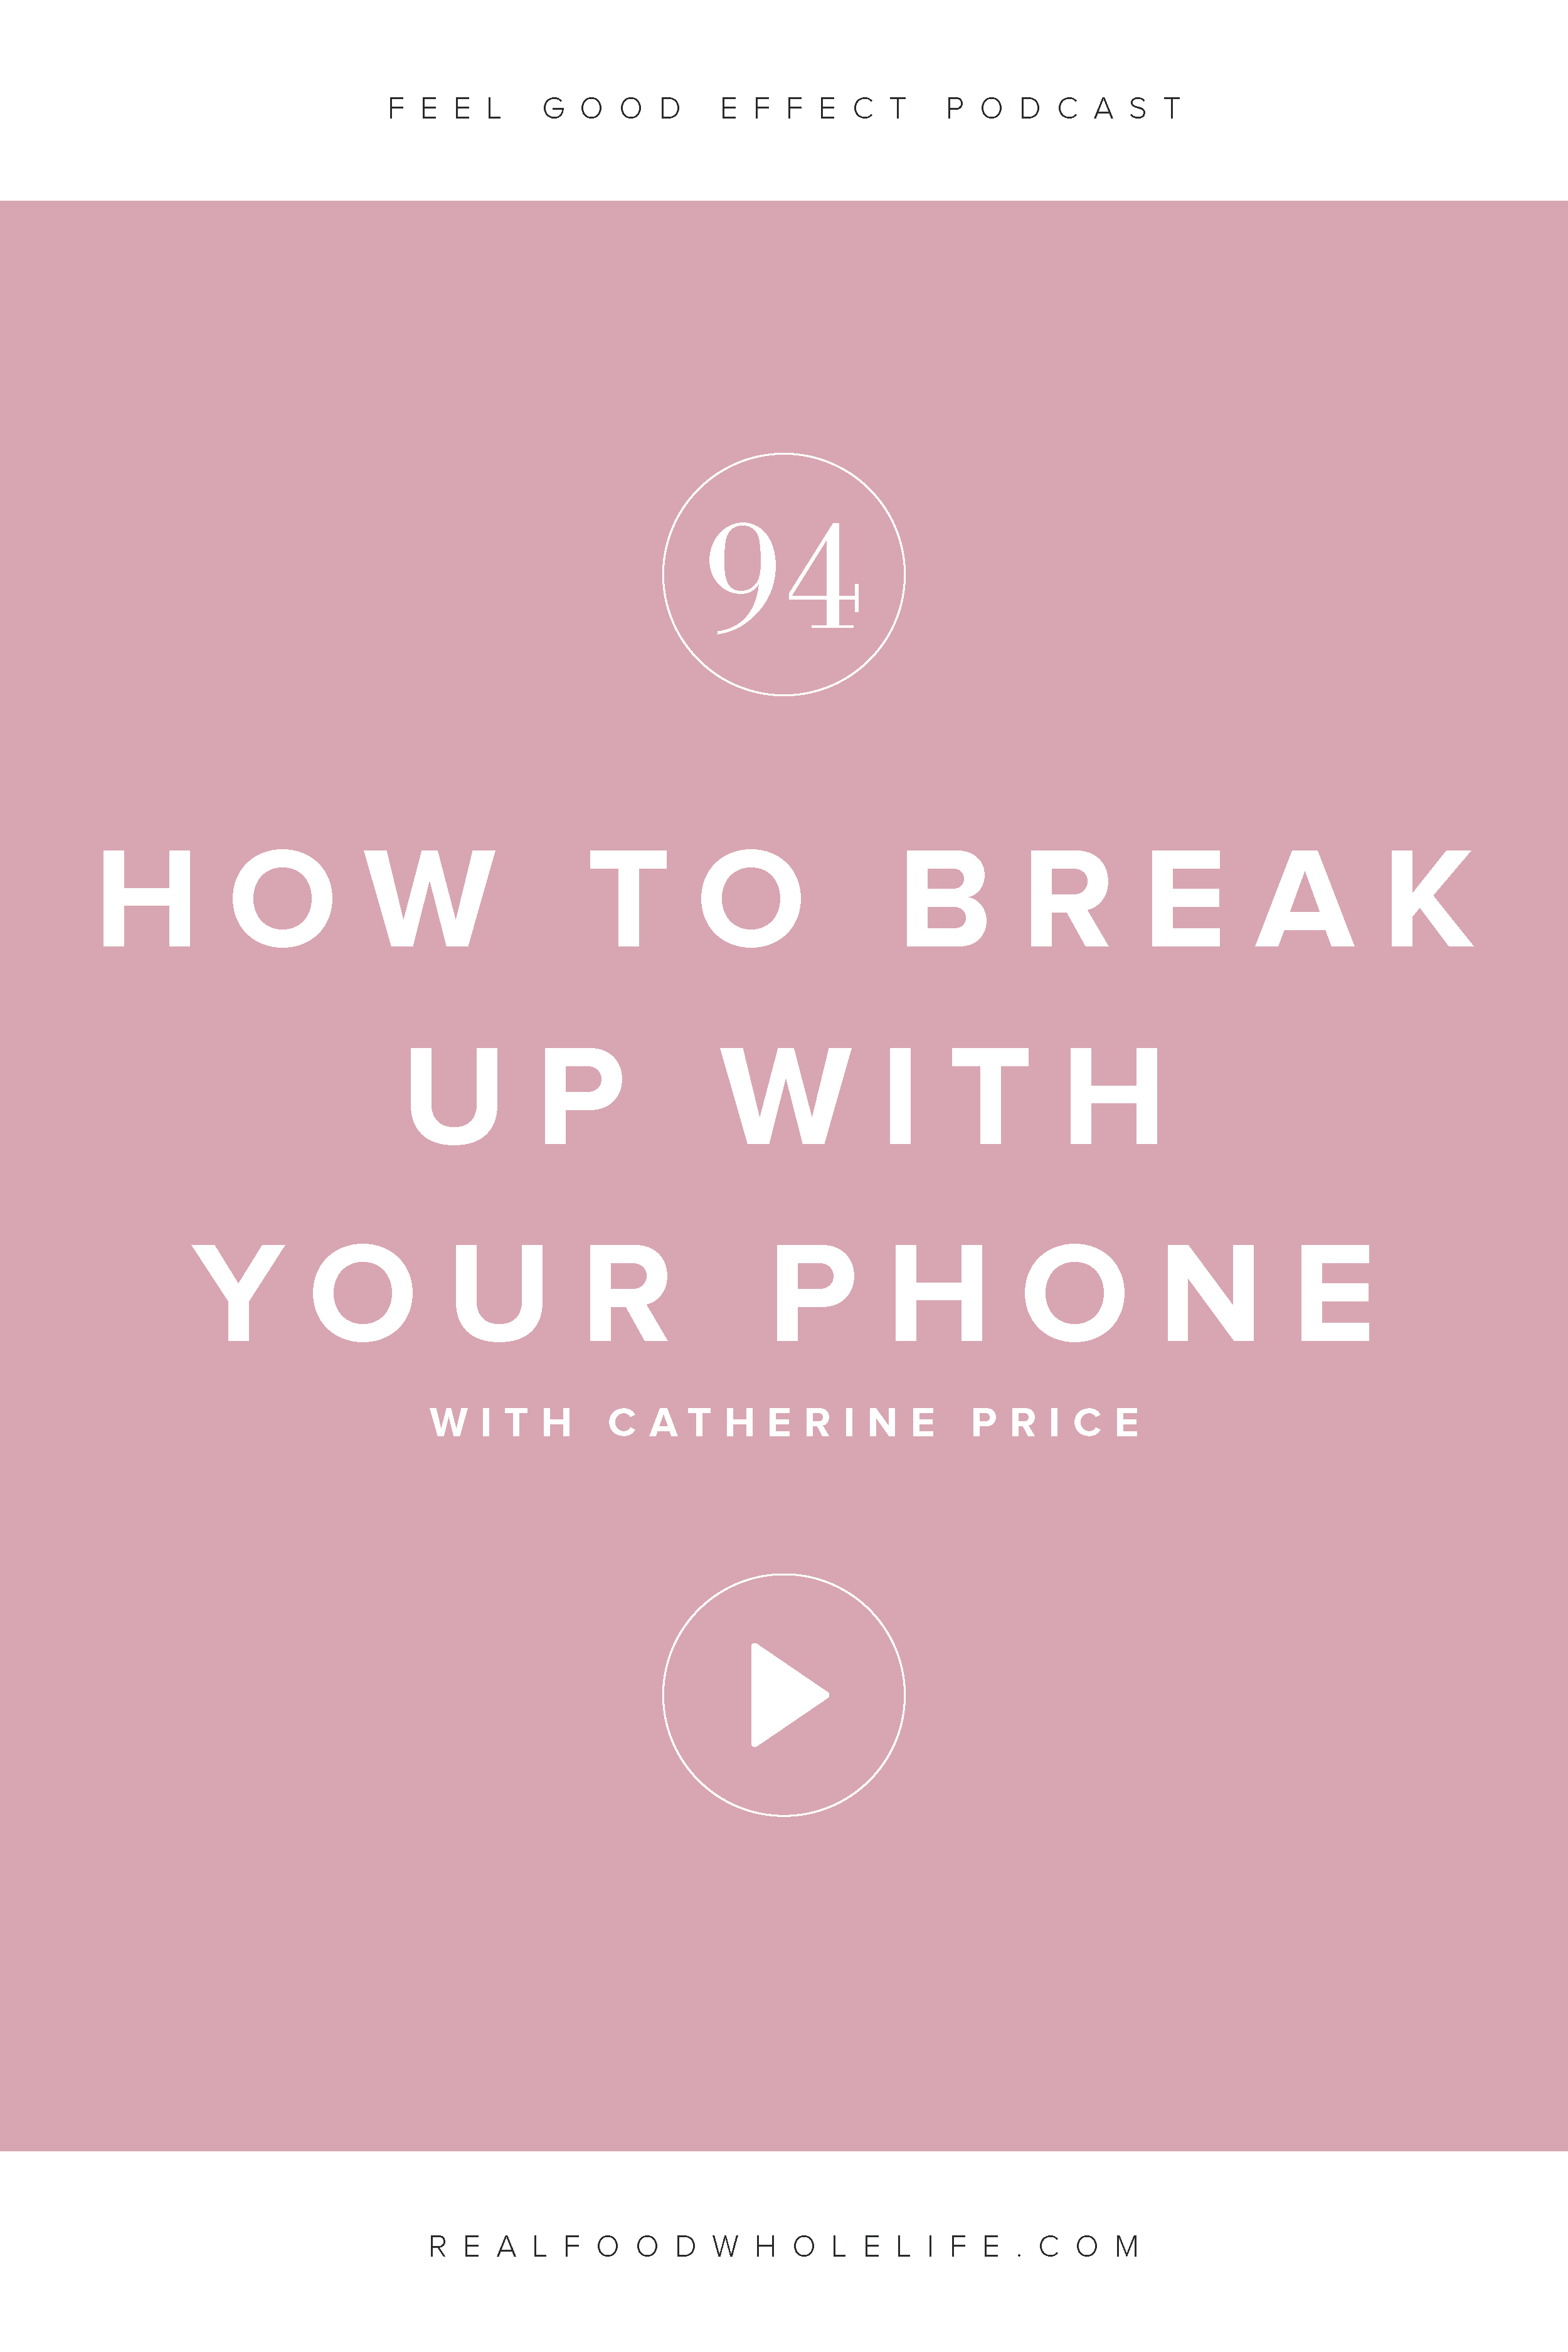 Ready to break up with your phone? Award-winning science journalist, Catherine Price, breaks down the science of what's really going on in our brains when it comes to phones, addictions, and habits. #realfoodwholelife #feelgoodeffect #gentle #wellness #habits #routines #addictions #phones #technology #purpose